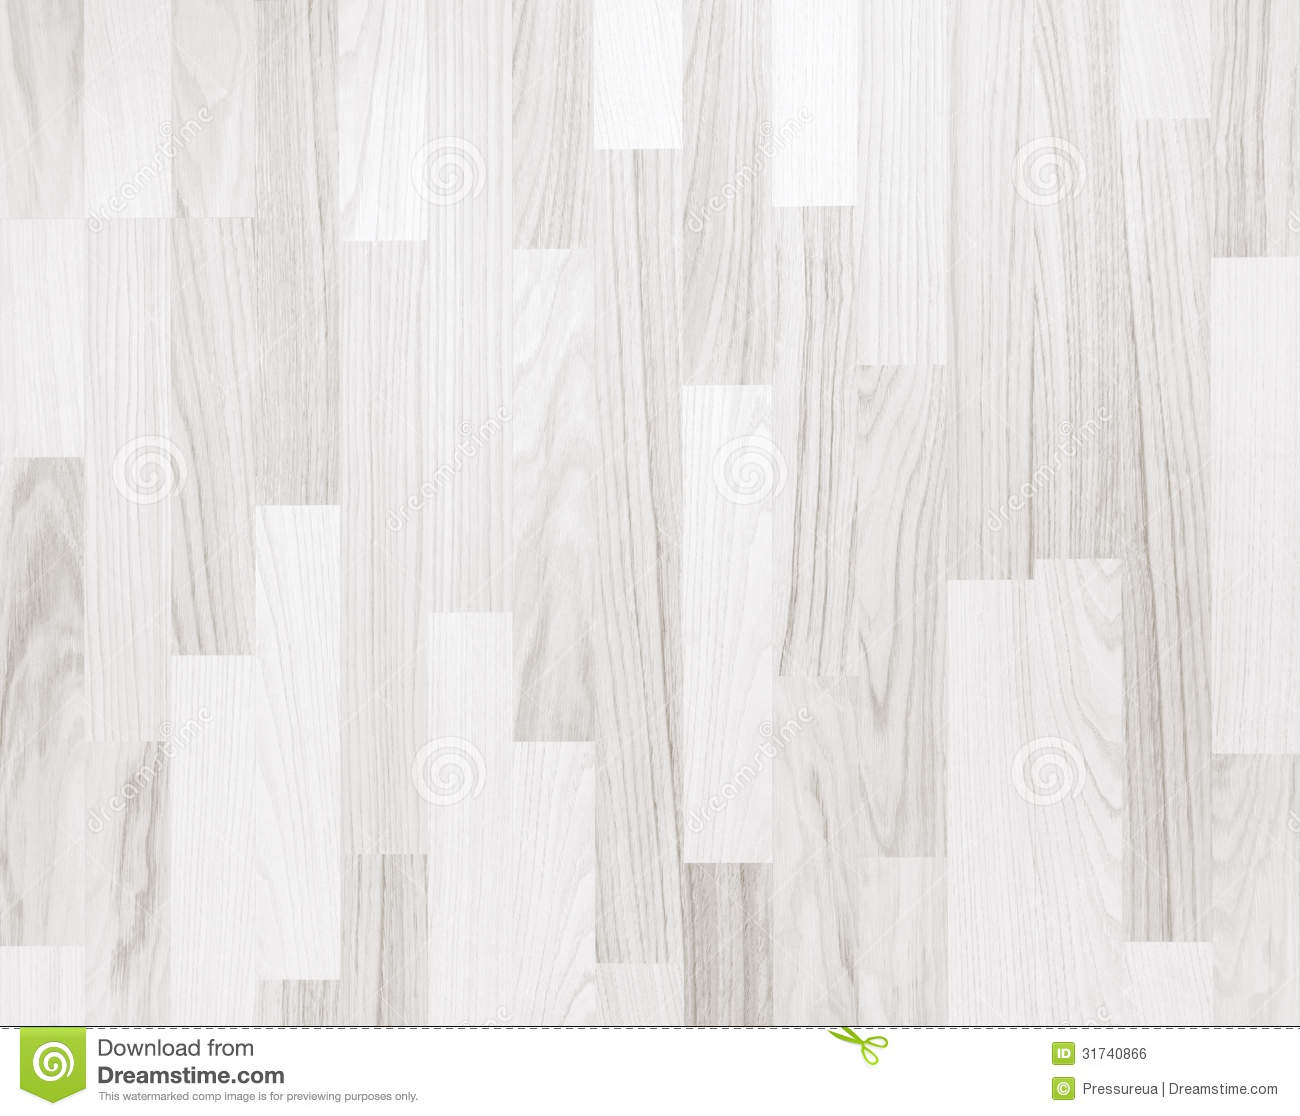 white wood floor texture. white wood floor texture 10  White Wood Repeatable Background lekton info